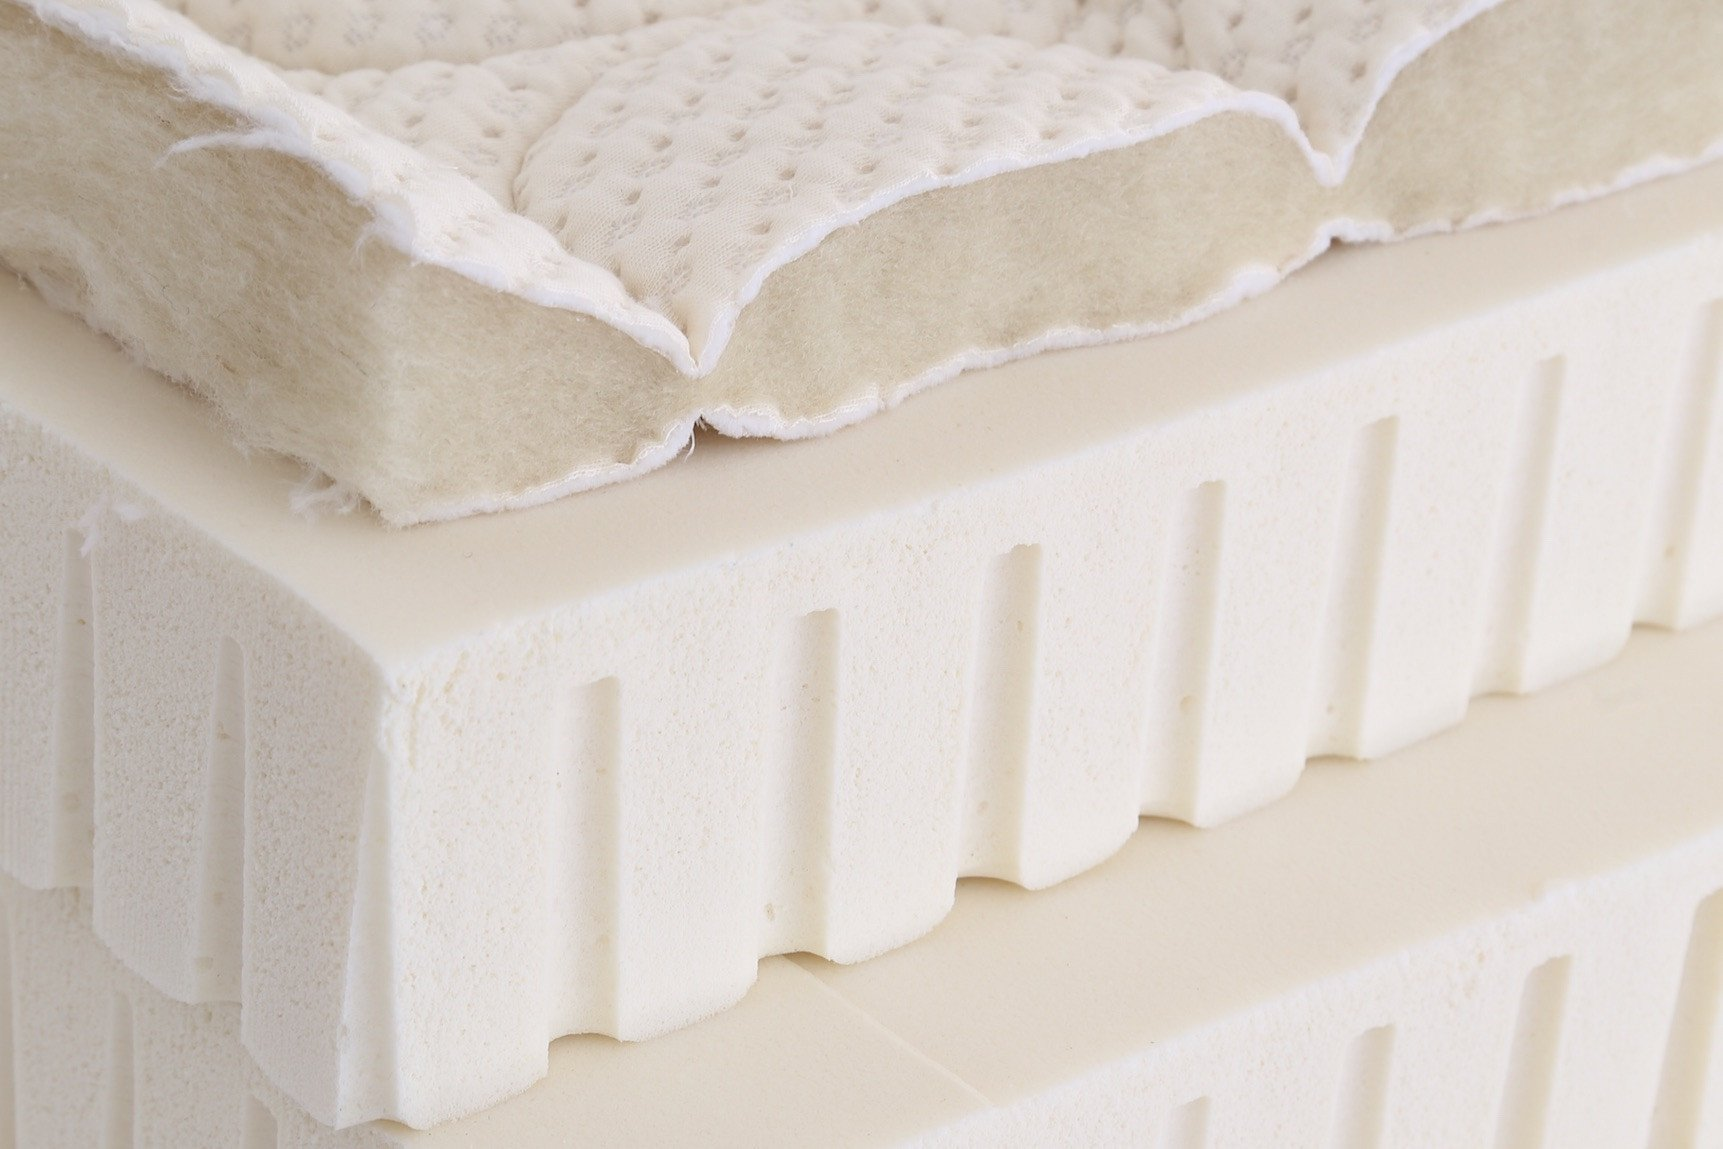 Serta Icomfort Reviews >> Spindle - Mattress Reviews | GoodBed.com